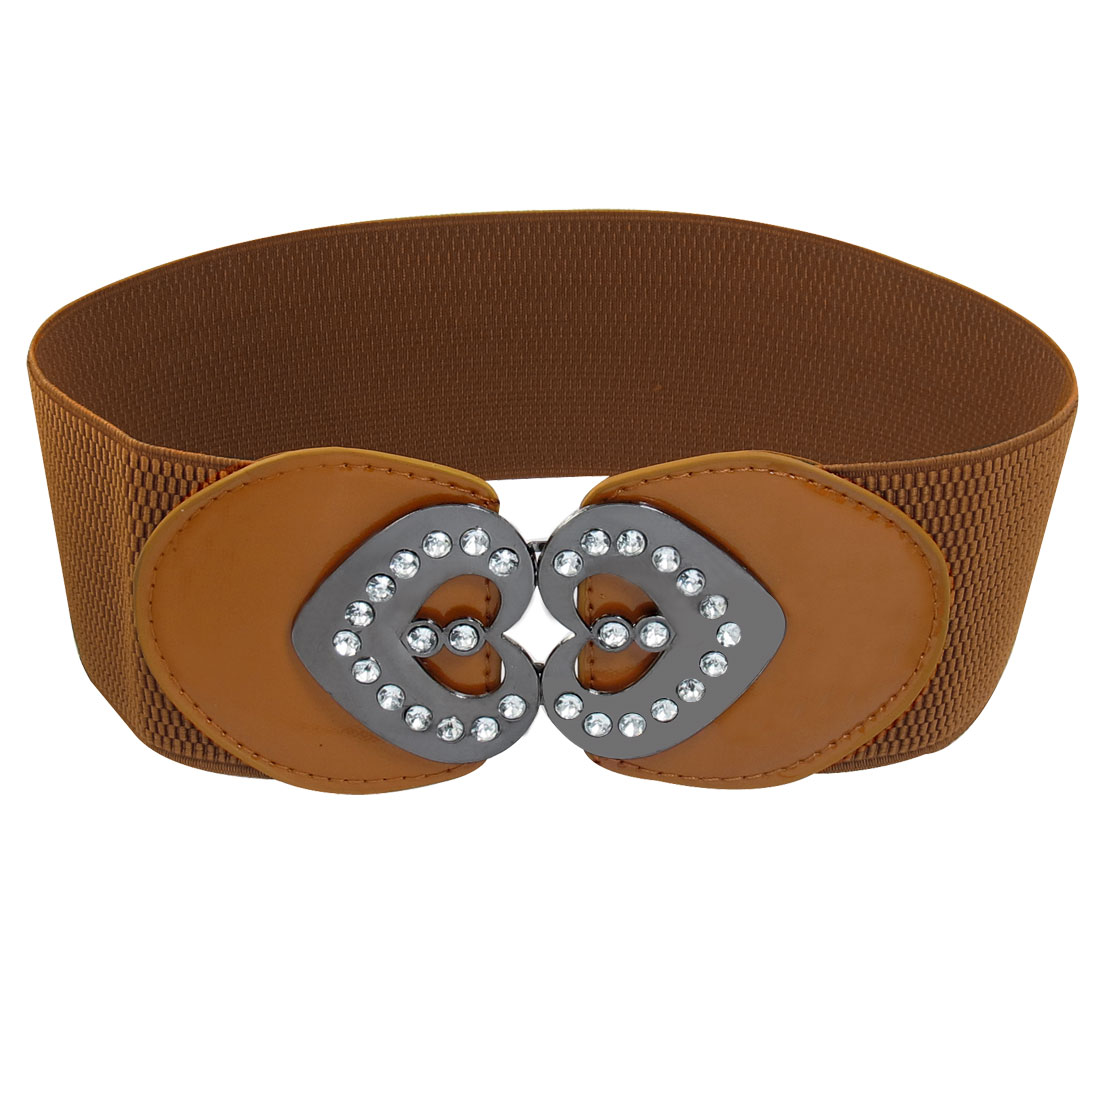 Bling Crystal Detail Double Heart Metal Buckle Stretchy Waist Belt Brown